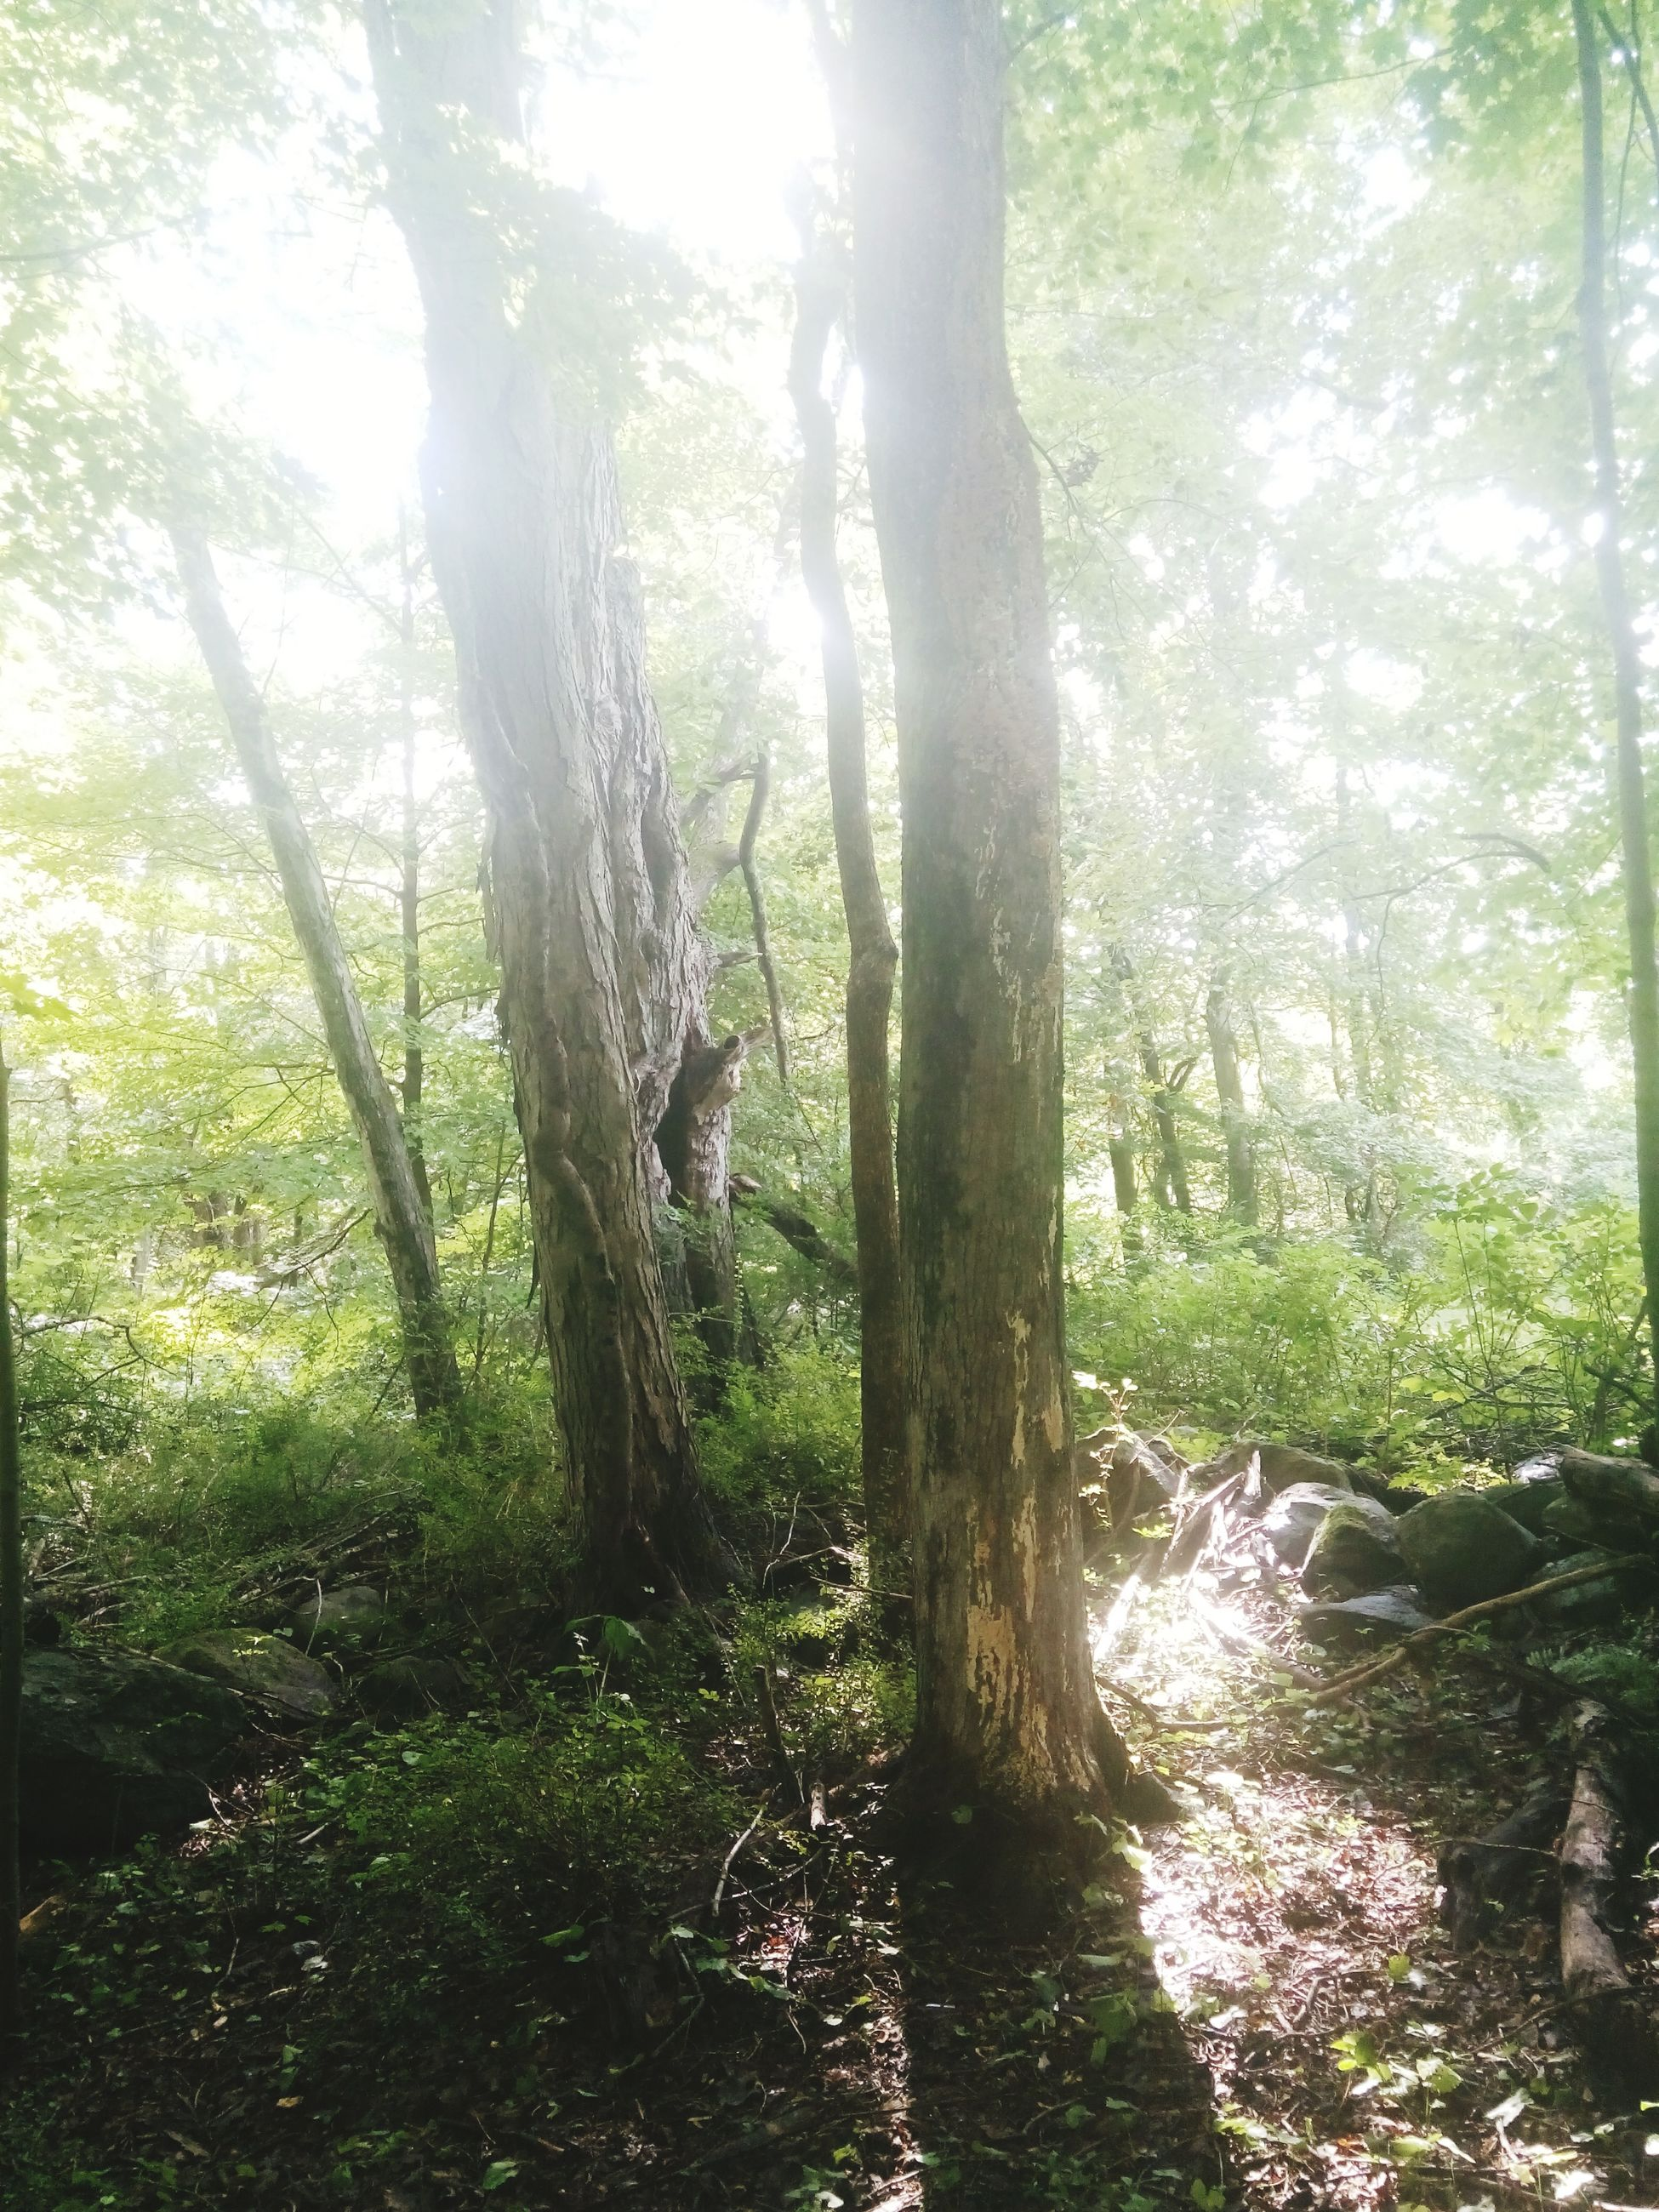 tree trunk, tree, forest, sunlight, growth, tranquility, nature, sunbeam, tranquil scene, woodland, lens flare, day, non-urban scene, scenics, solitude, beauty in nature, green color, outdoors, growing, footpath